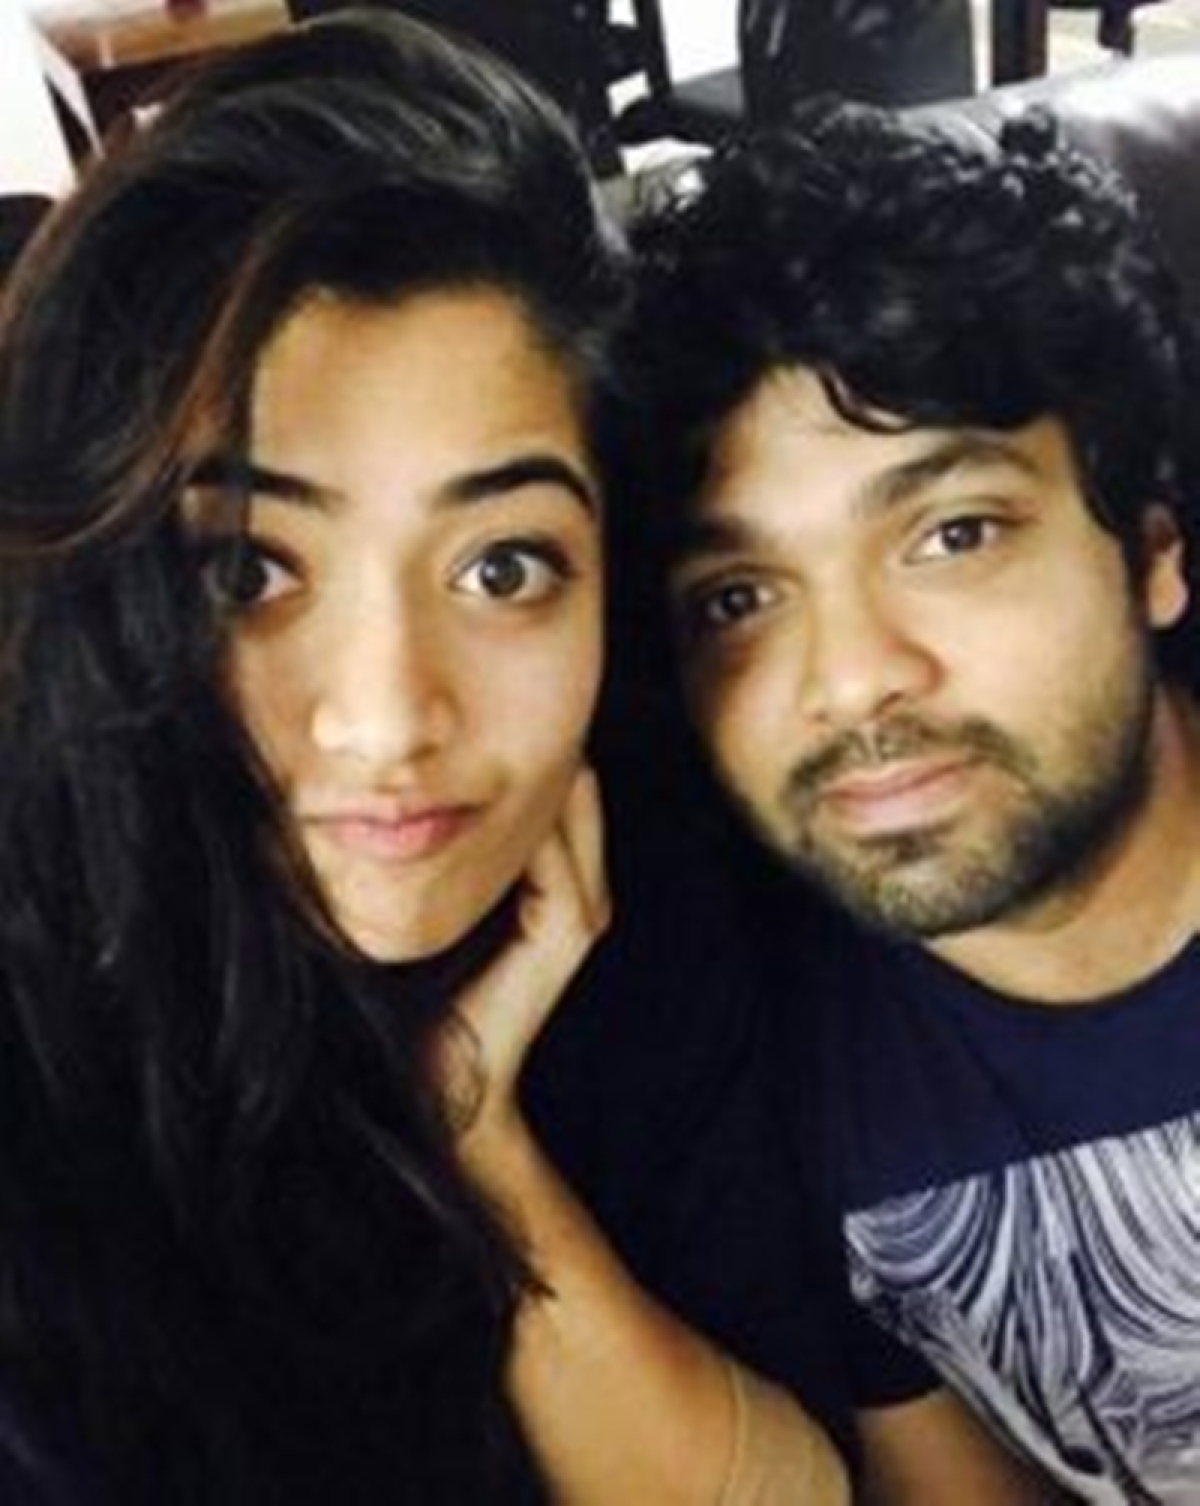 Rashmika Mandanna-Rakshit Shetty break up rumours: Nothing of that sort happening, says manager